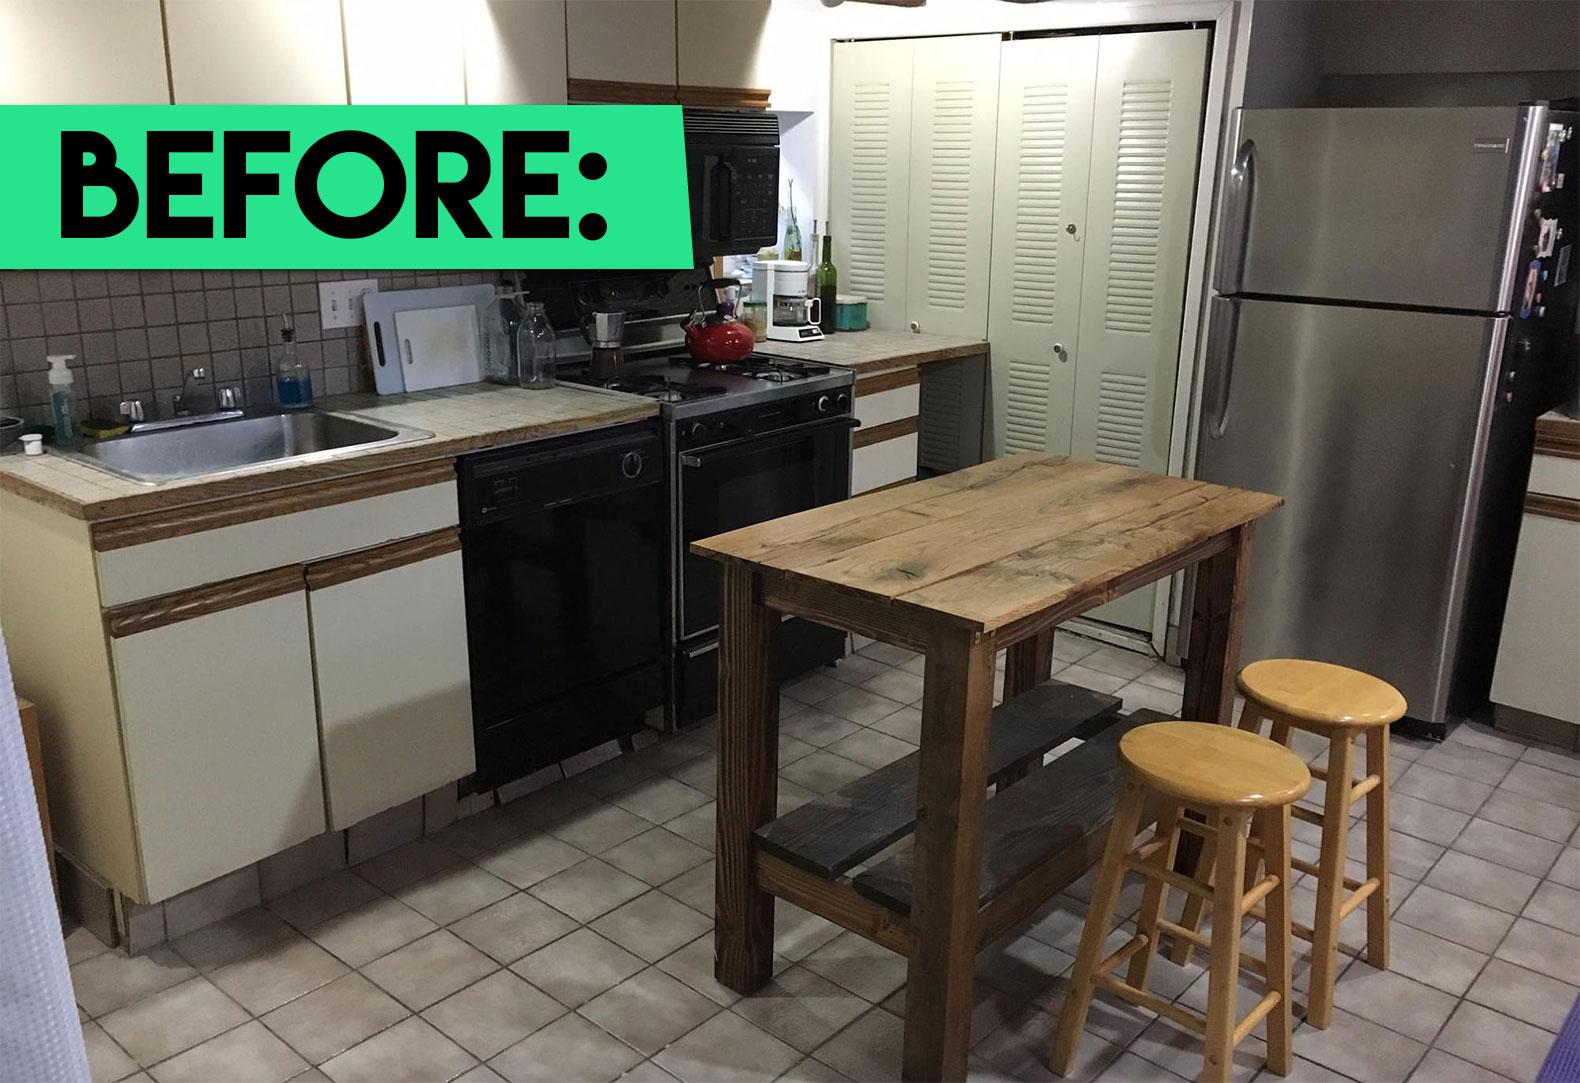 Friends Give Their Kitchen A Green Makeover Filled With Fun Upcycled Touches